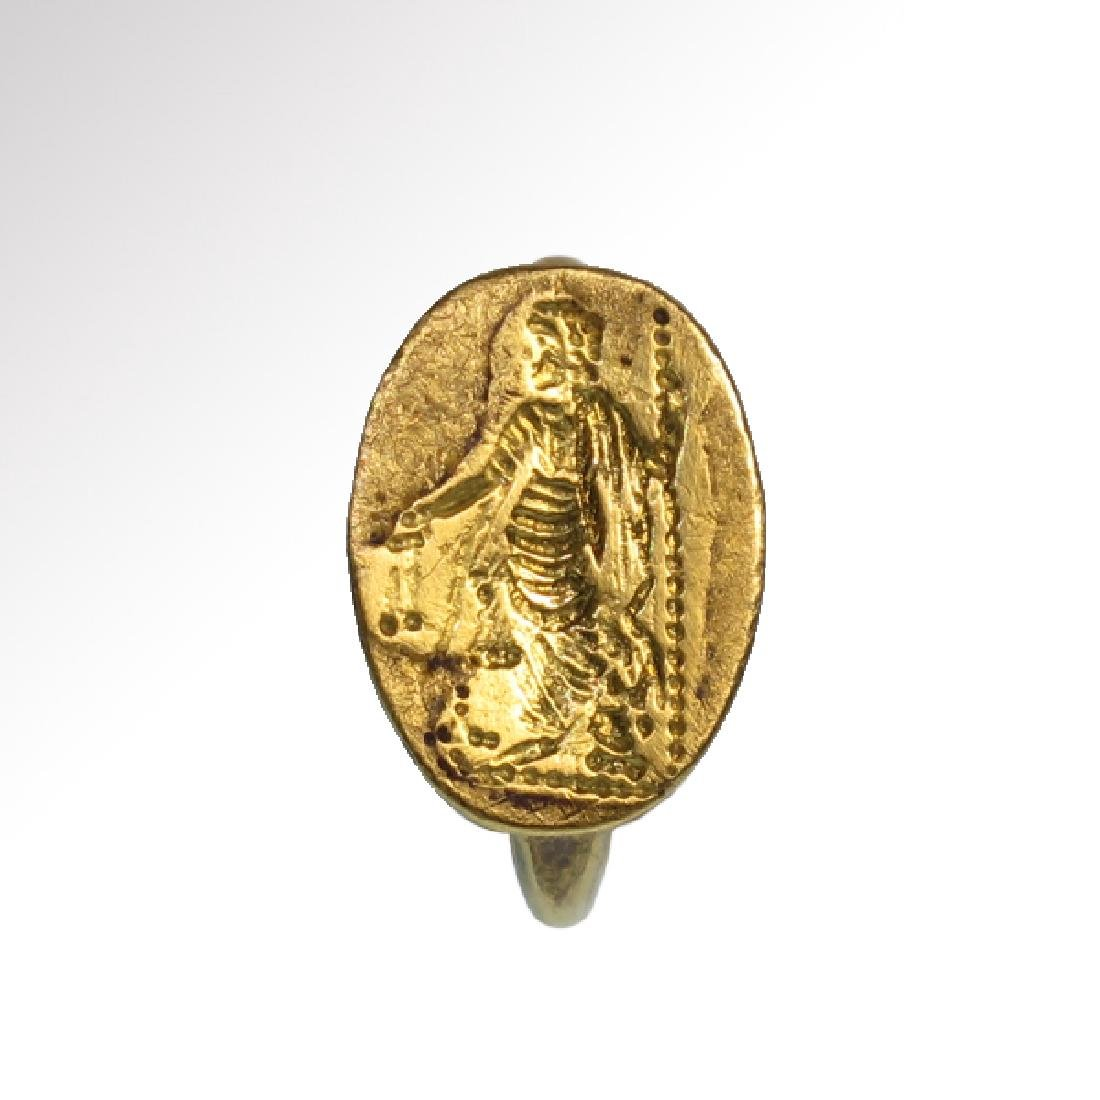 Roman Solid Gold Ring with Goddess Hera, c. 2nd Century